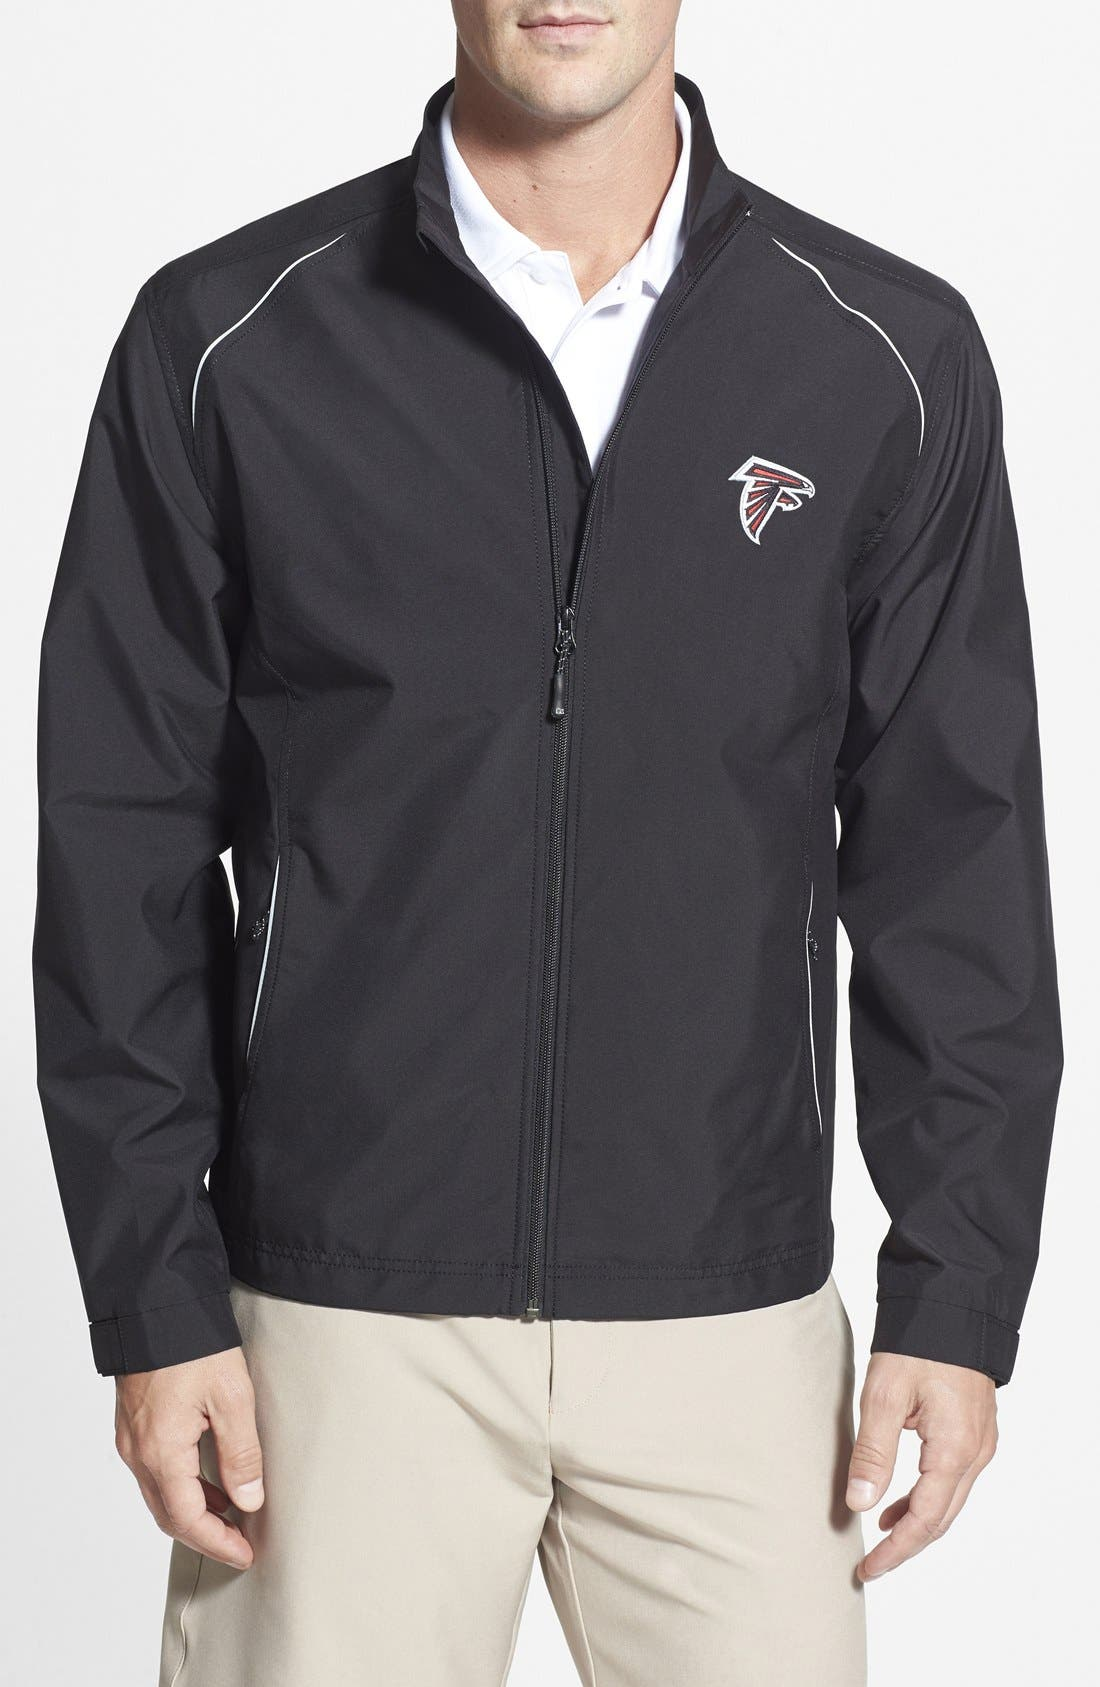 Atlanta Falcons - Beacon WeatherTec Wind & Water Resistant Jacket,                         Main,                         color, 001